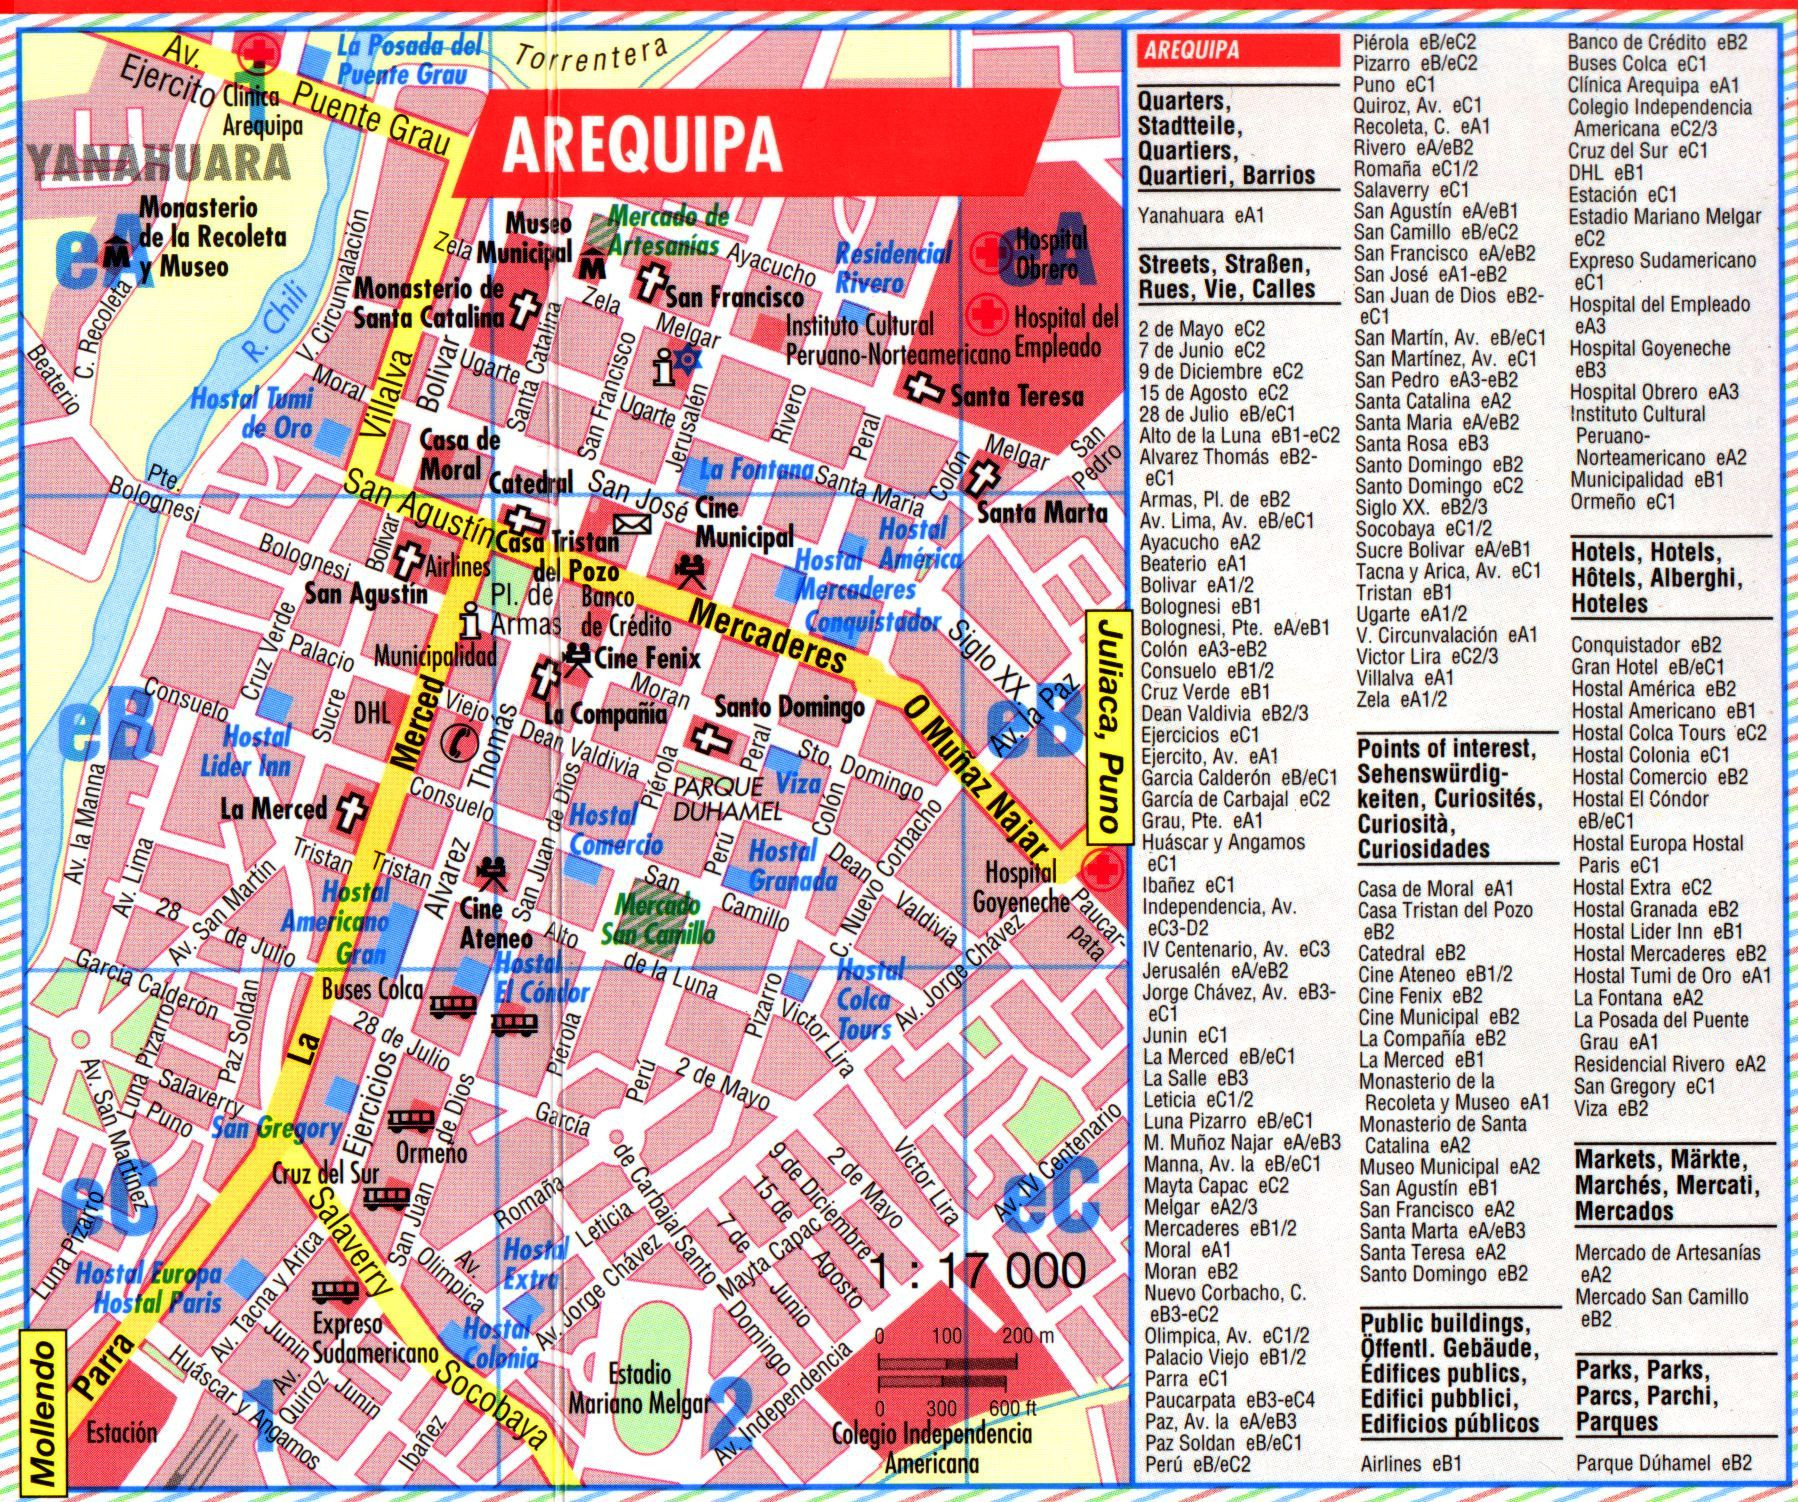 Printable Map Peru Luxury Arequipa Tourist Map Arequipa Peru • Mappery Peru